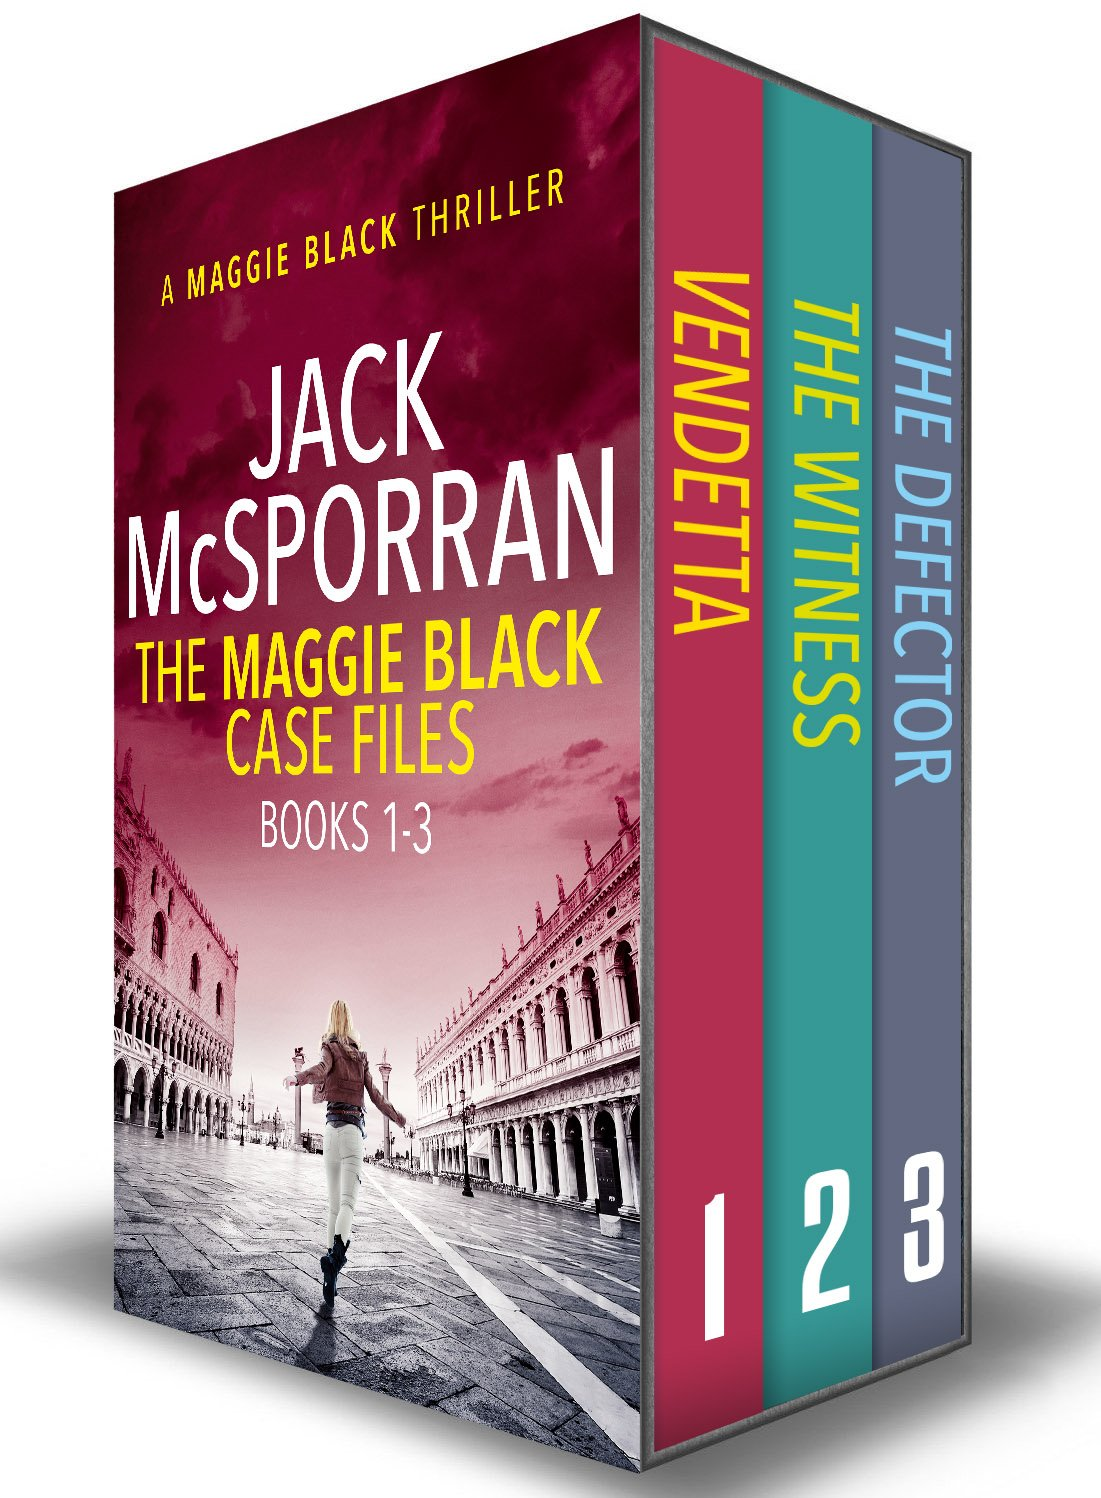 The Maggie Black Case Files Books 1-3 (Maggie Black Case Files Collection)